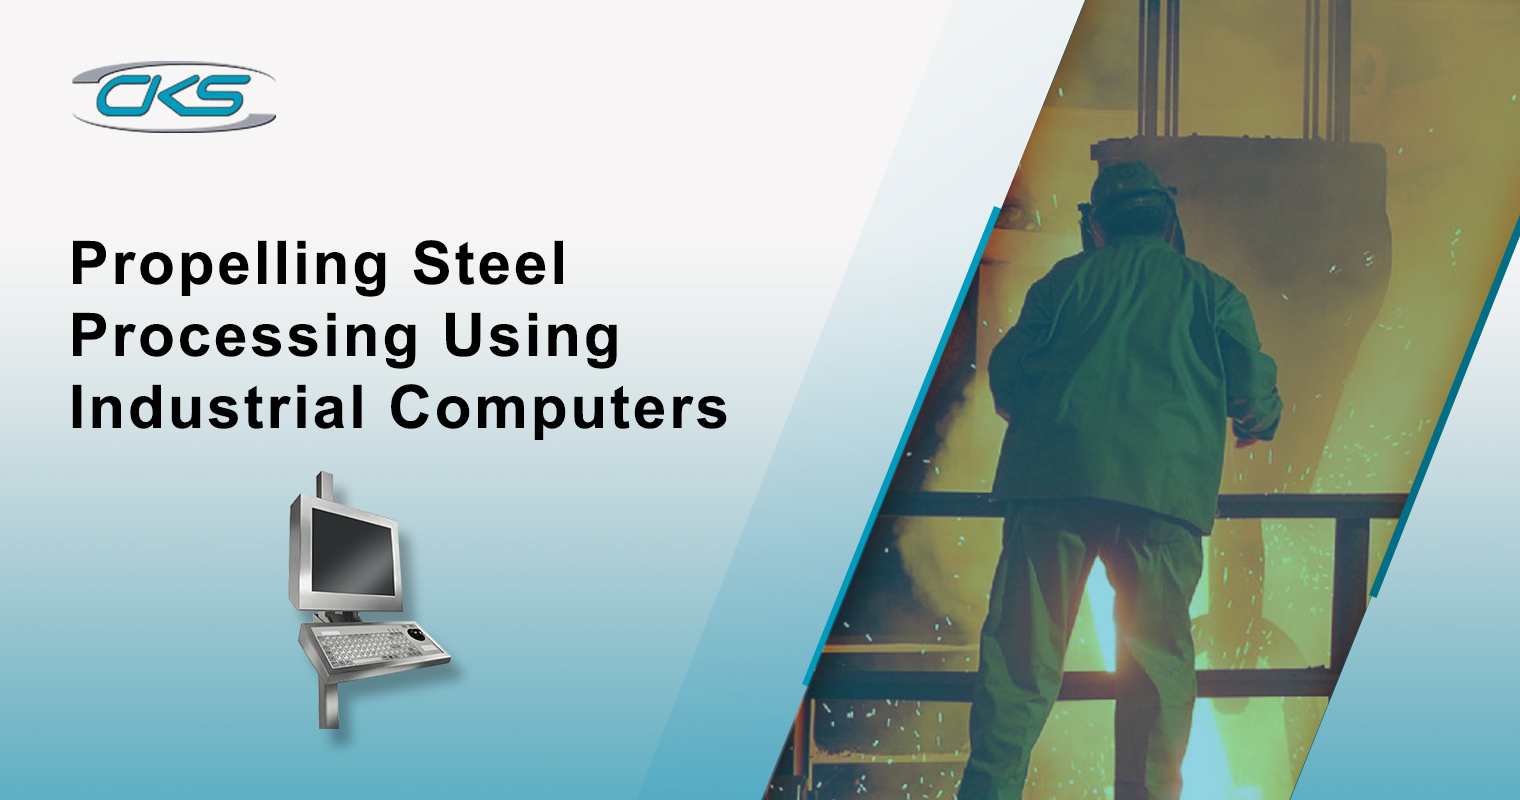 Propelling Steel Processing Using Industrial Computers